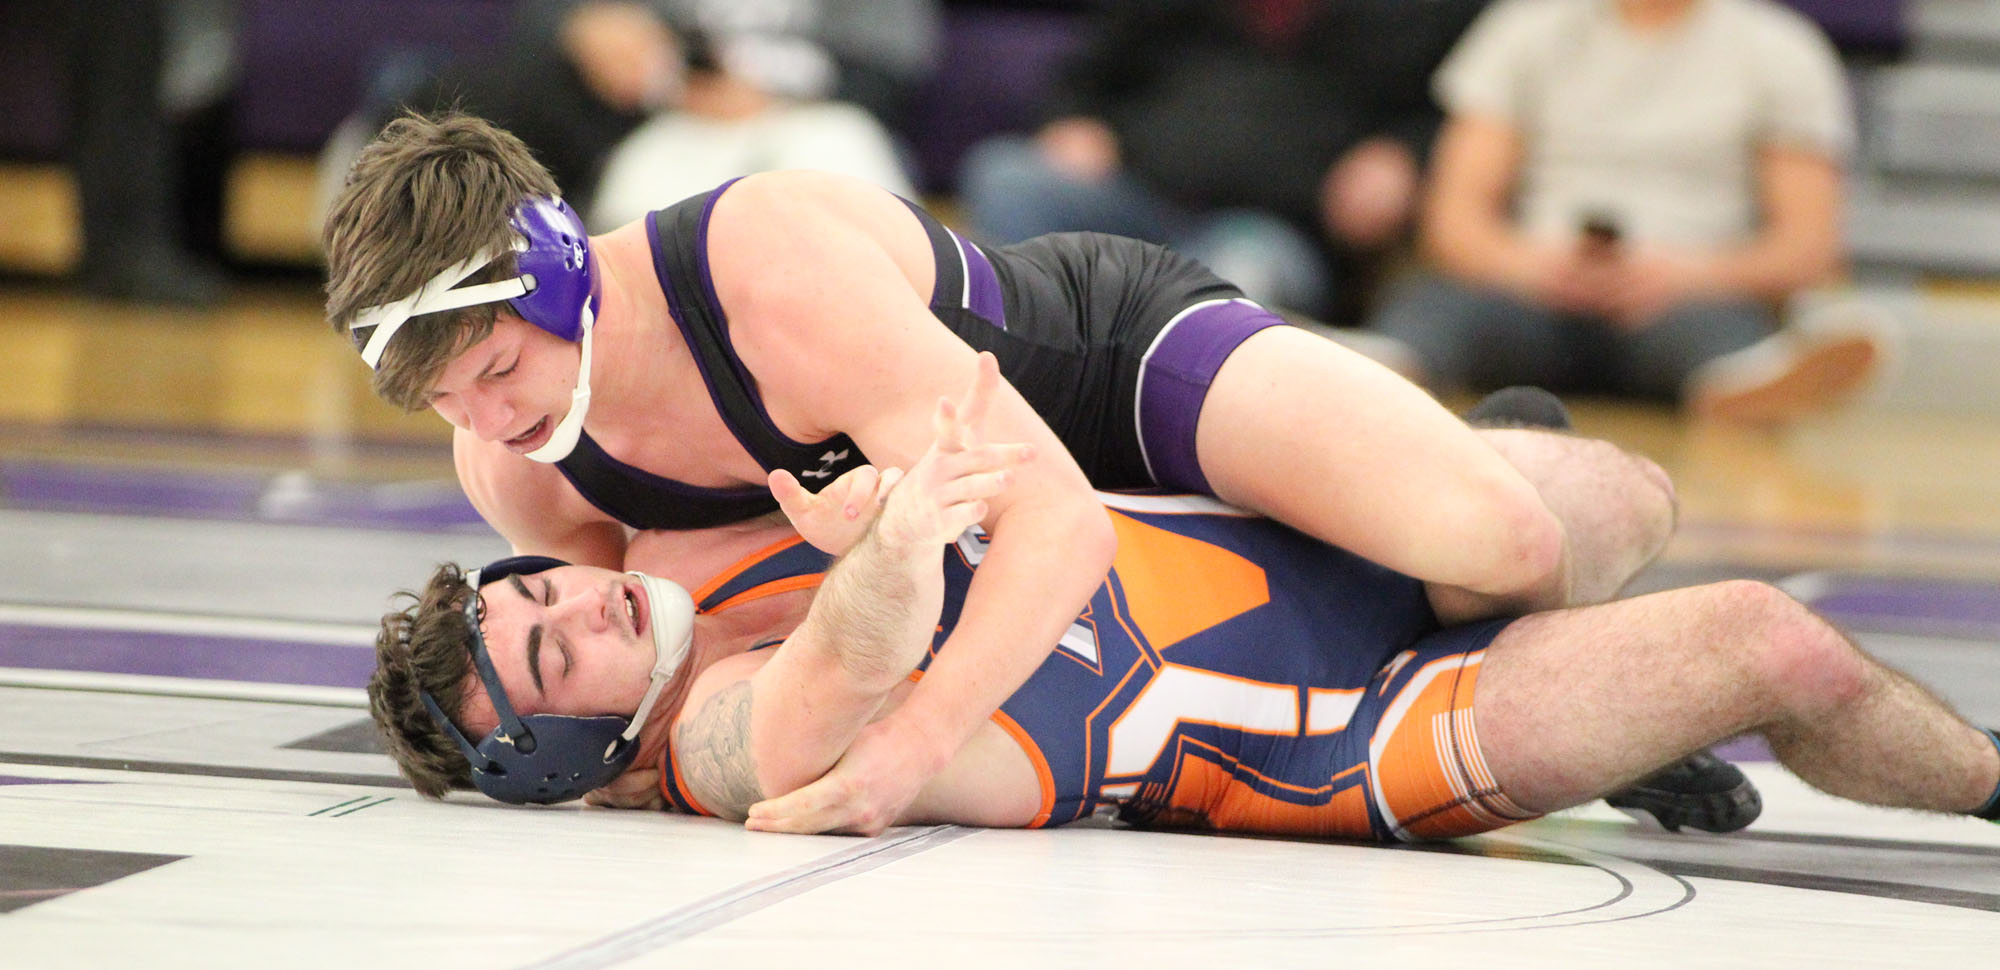 Kyle Shaffer notched a pin at 165 pounds against McDaniel on Sunday.